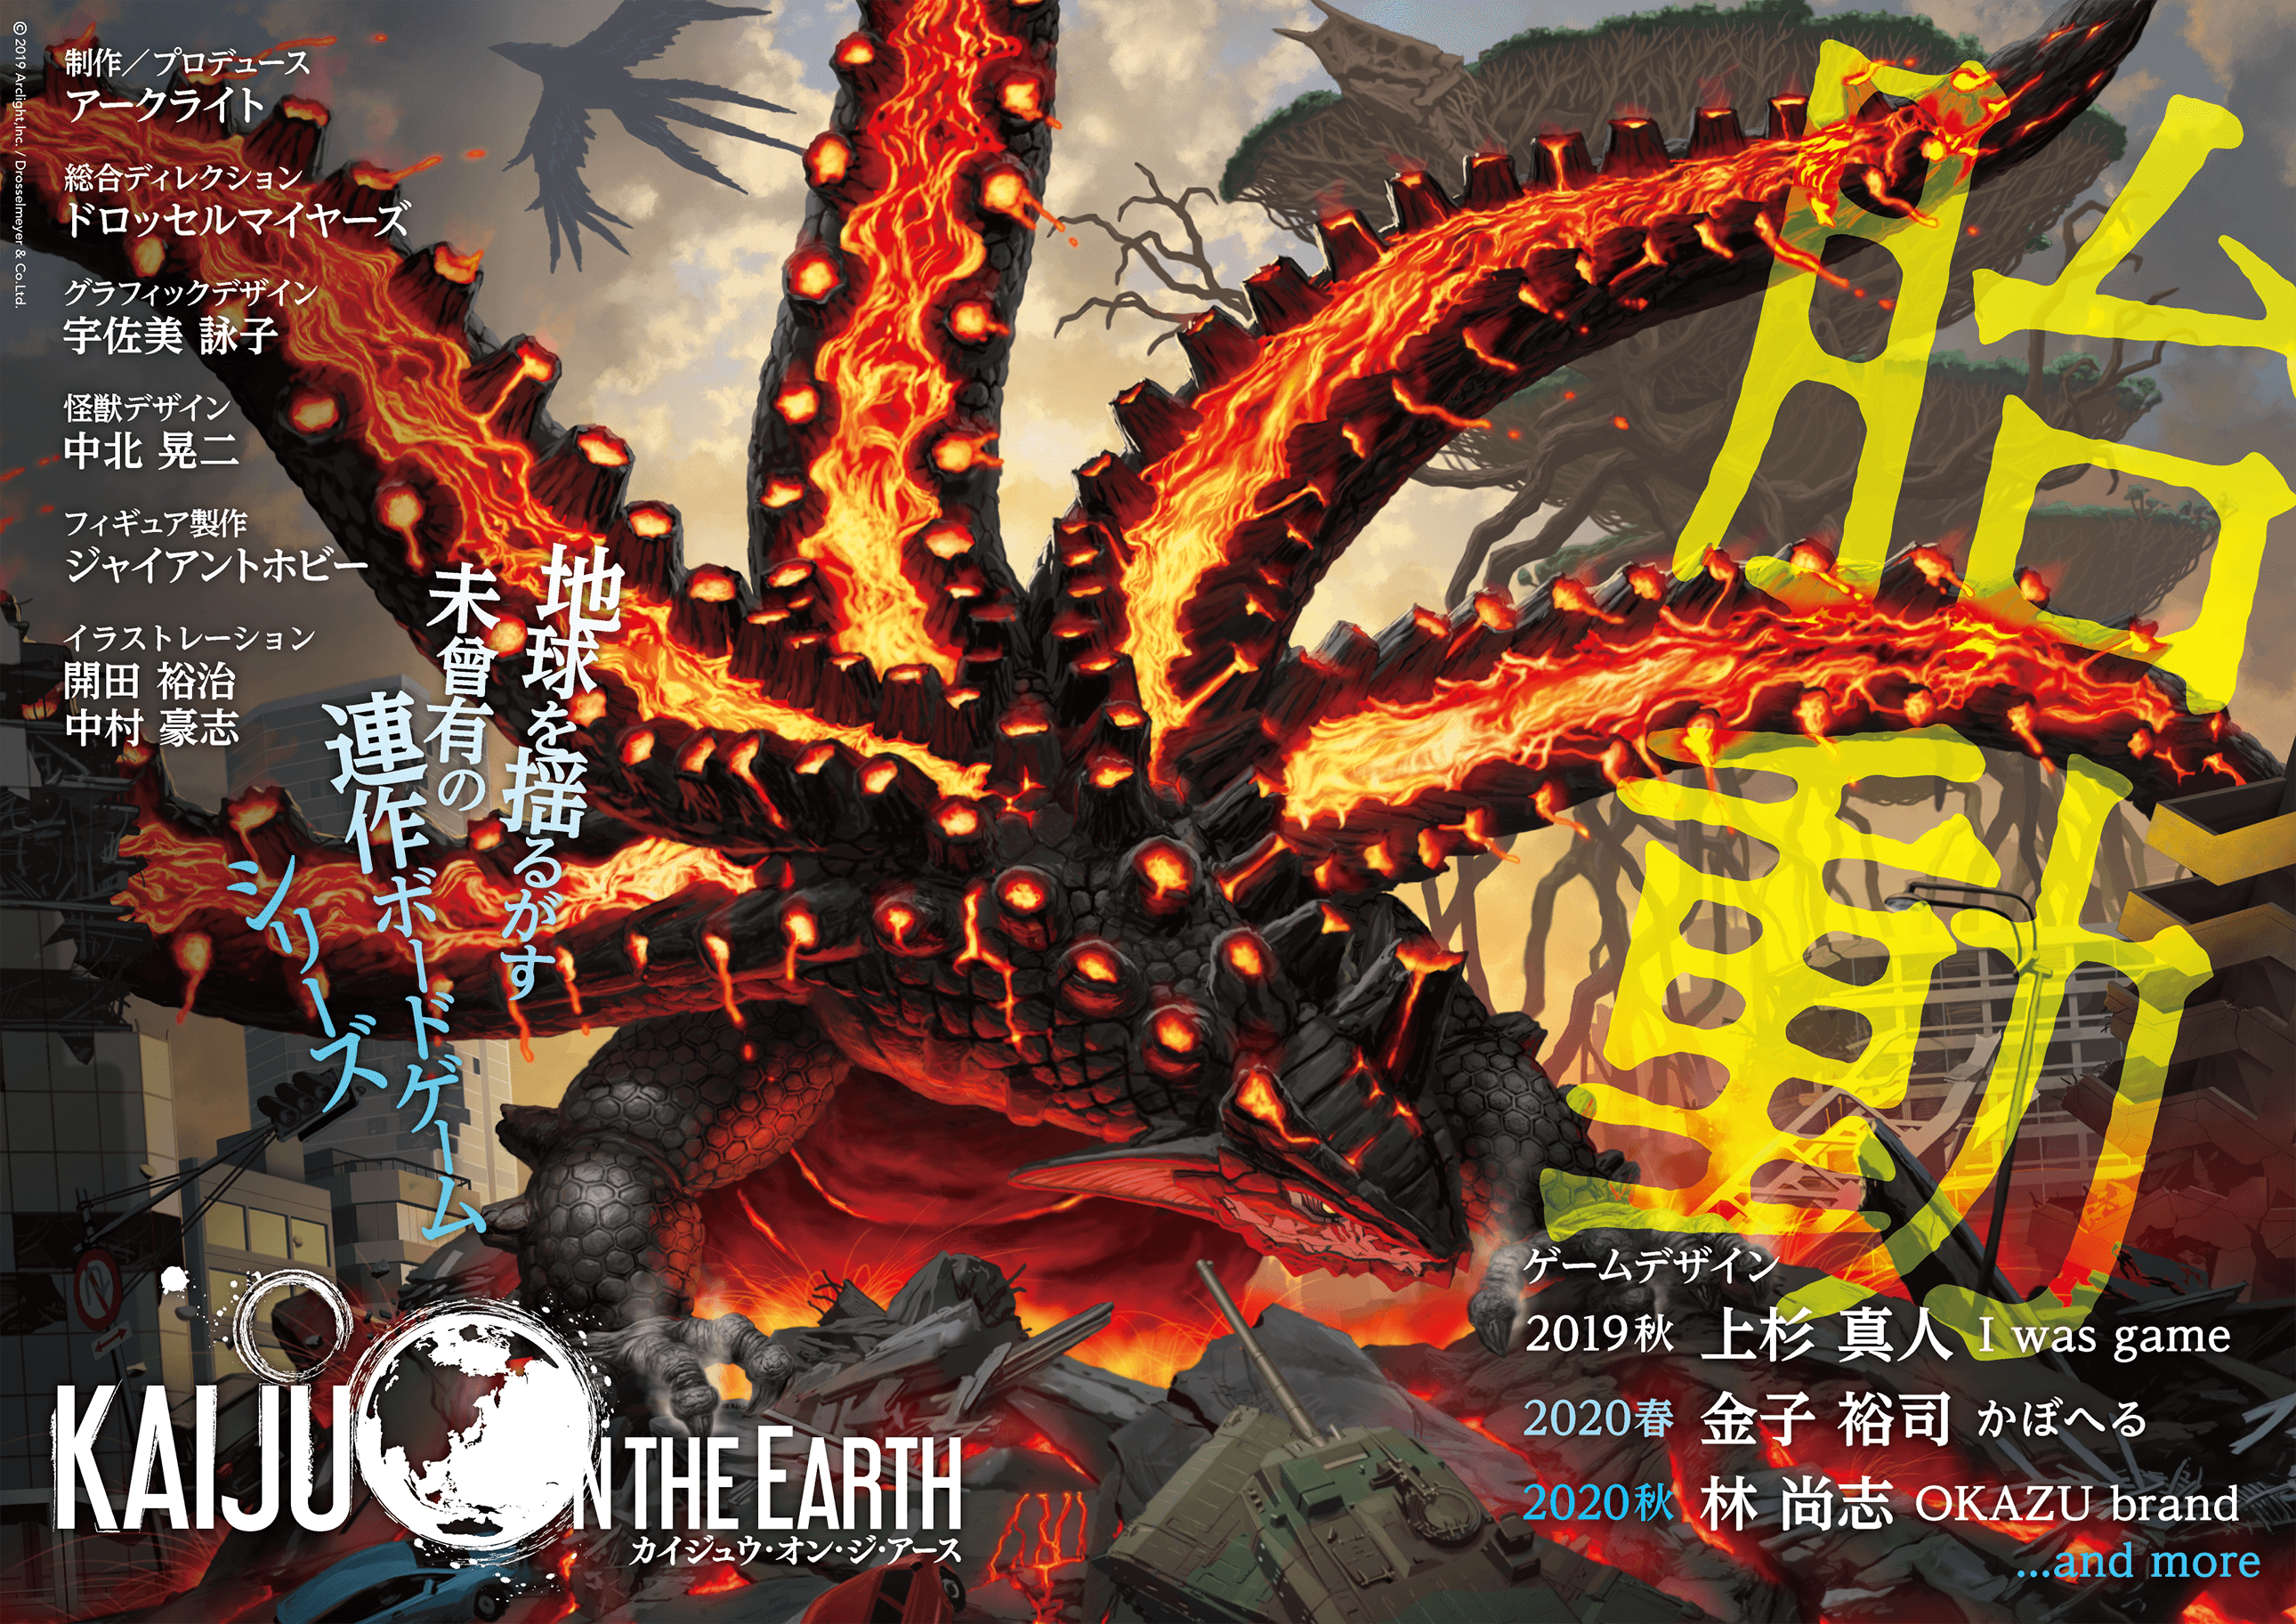 http://kaijuontheearth.com/img/img_poster.png